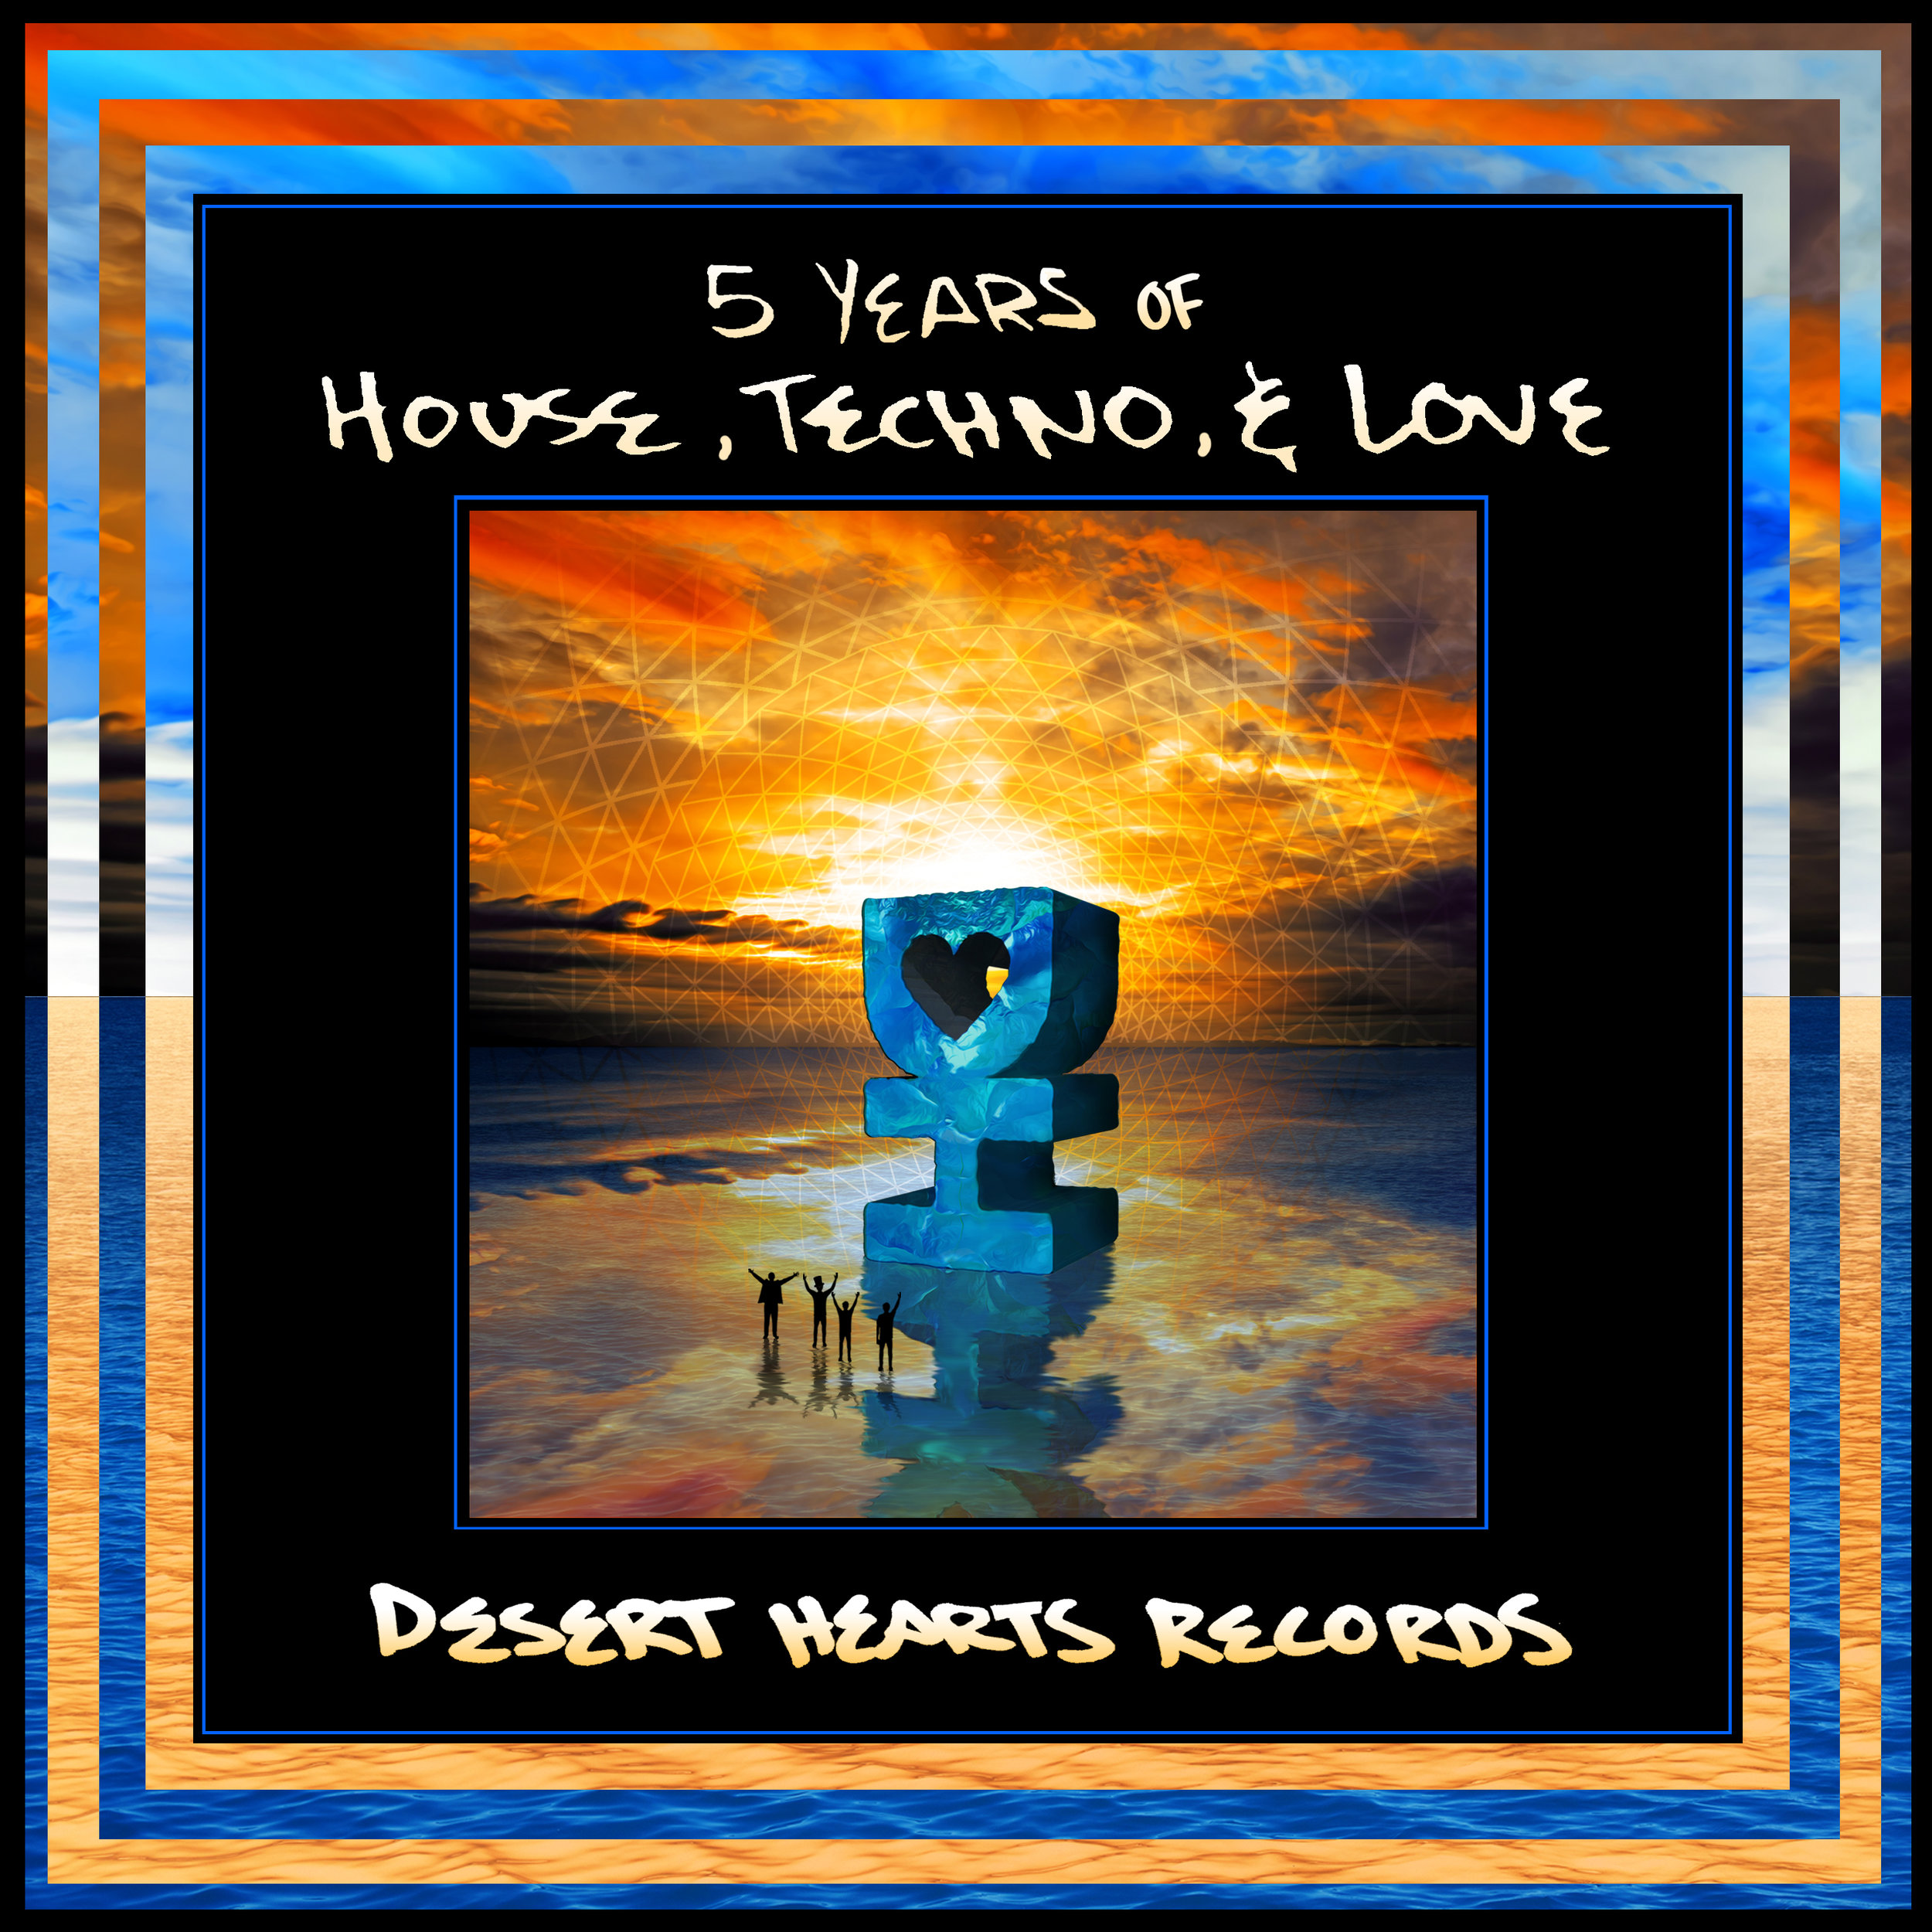 [DH067] Various Artists - 5 Years of Desert Hearts Records.jpg